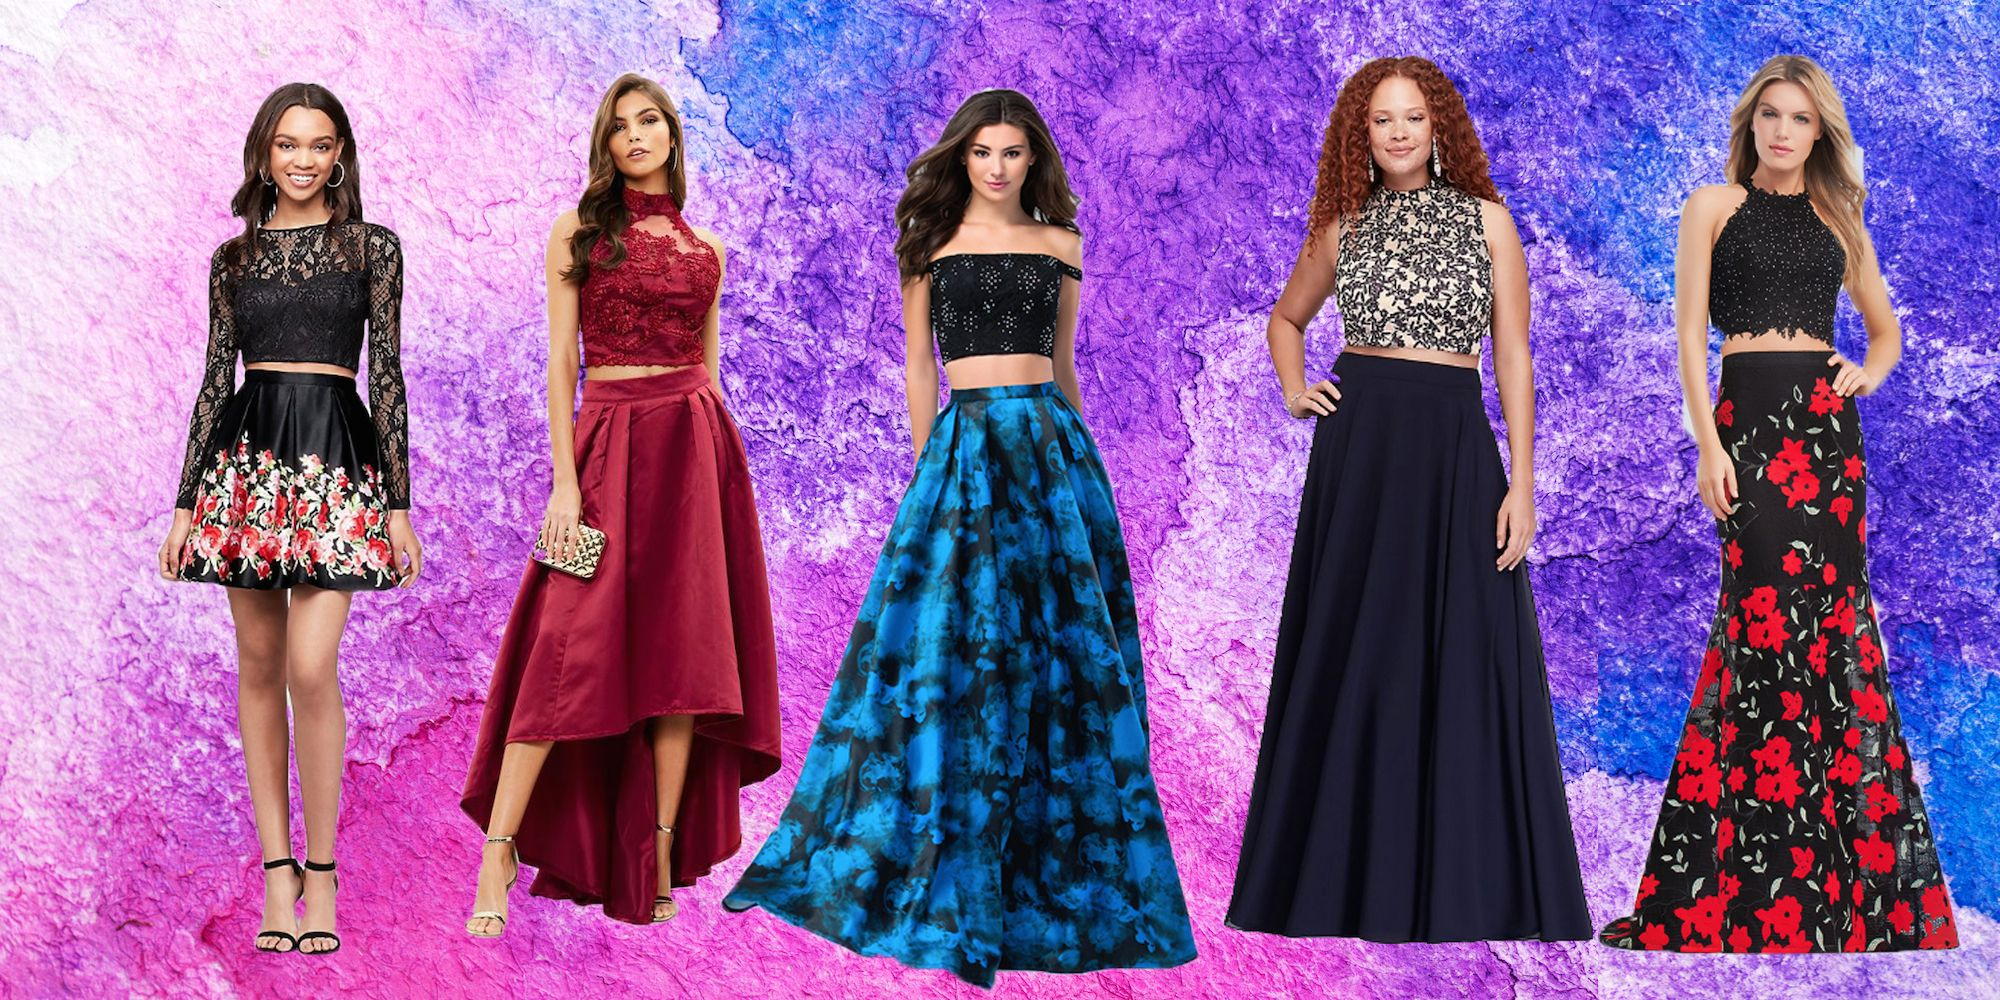 Best color prom dress for me quiz